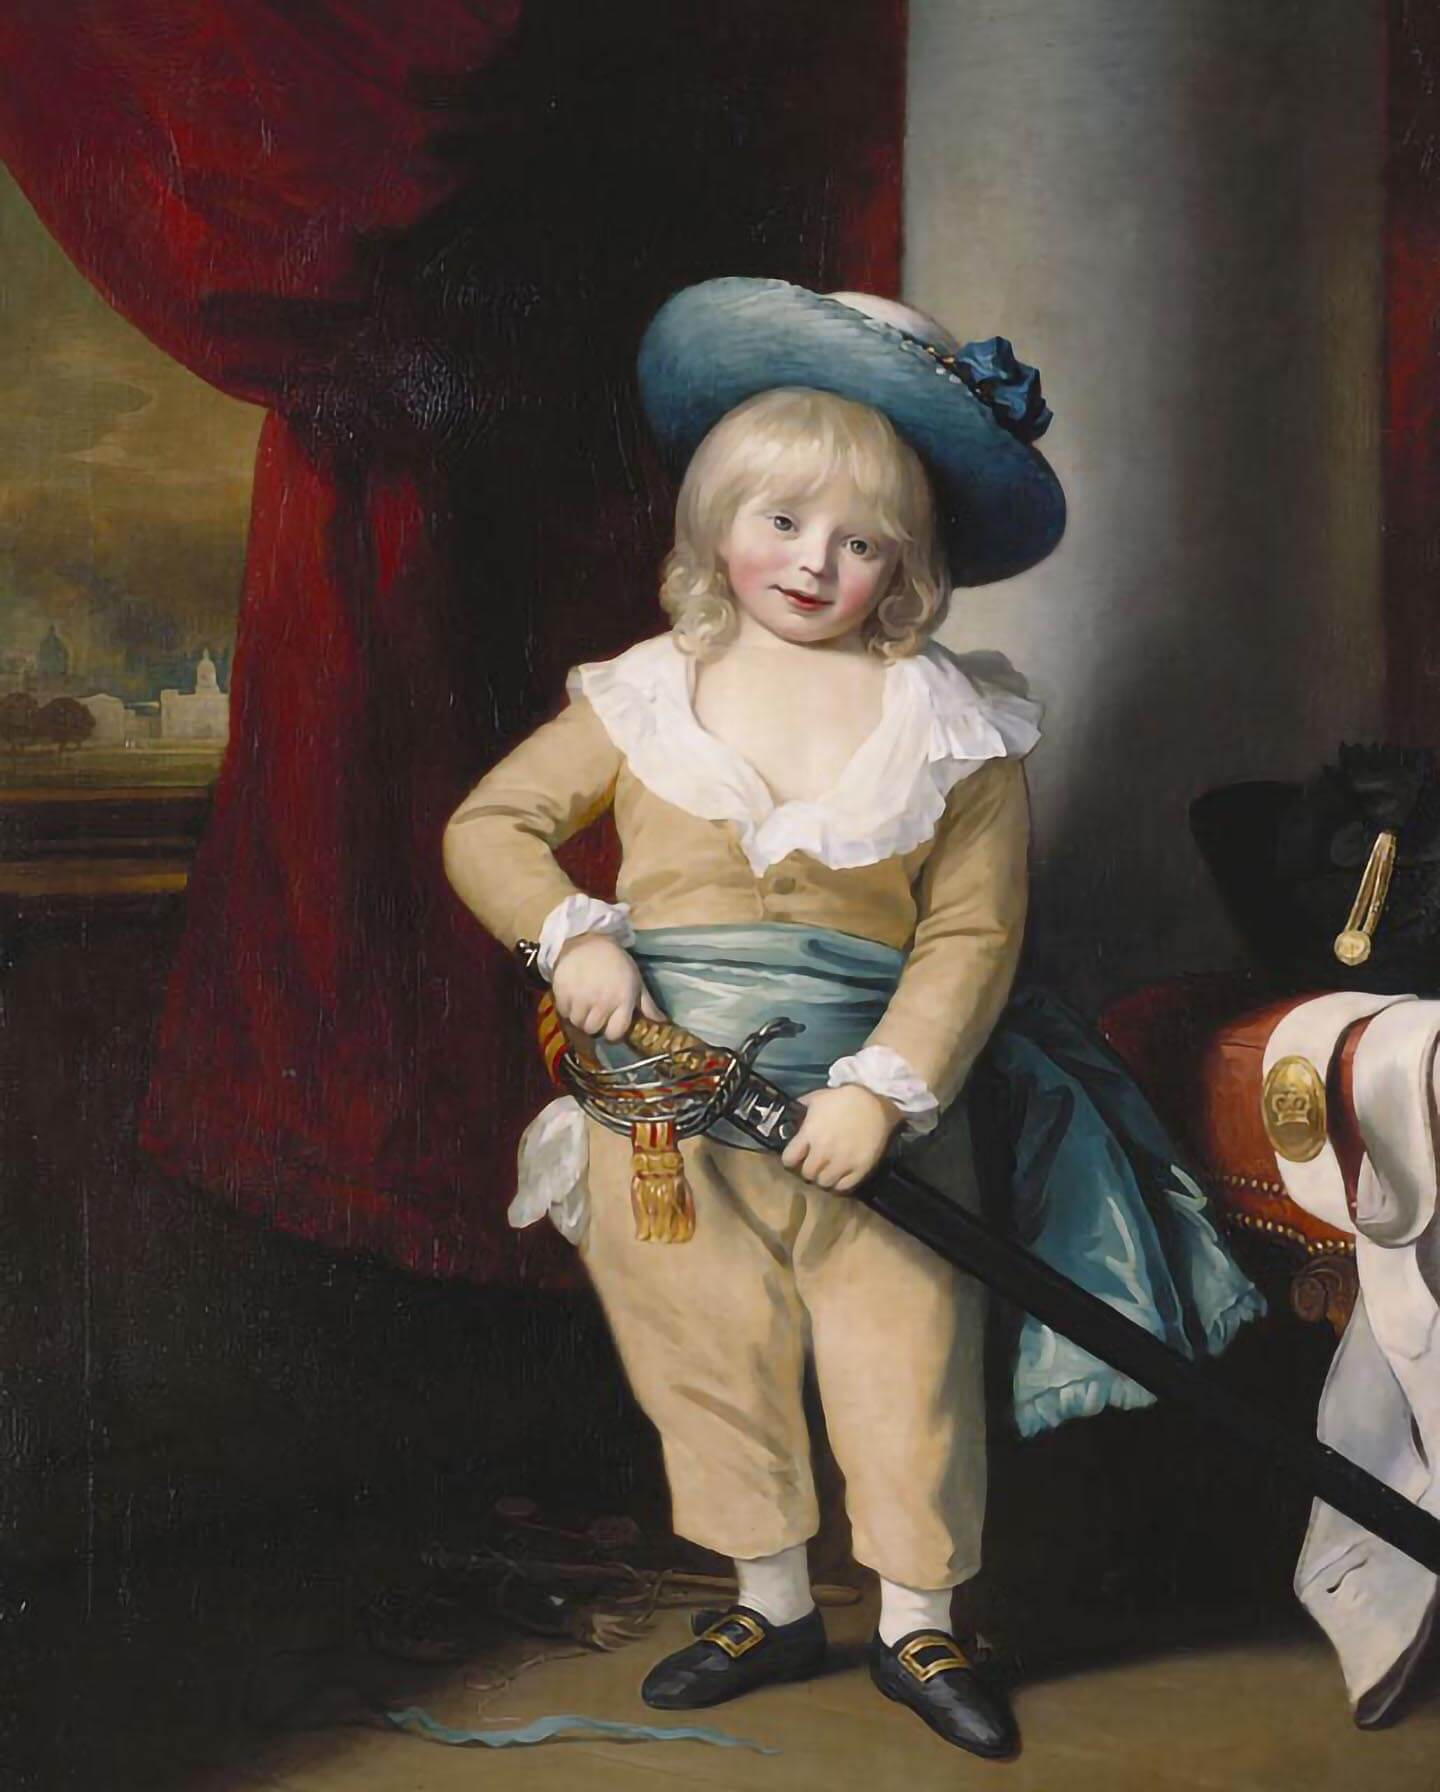 An 18th-century prince in a blue hat holding an adult sword